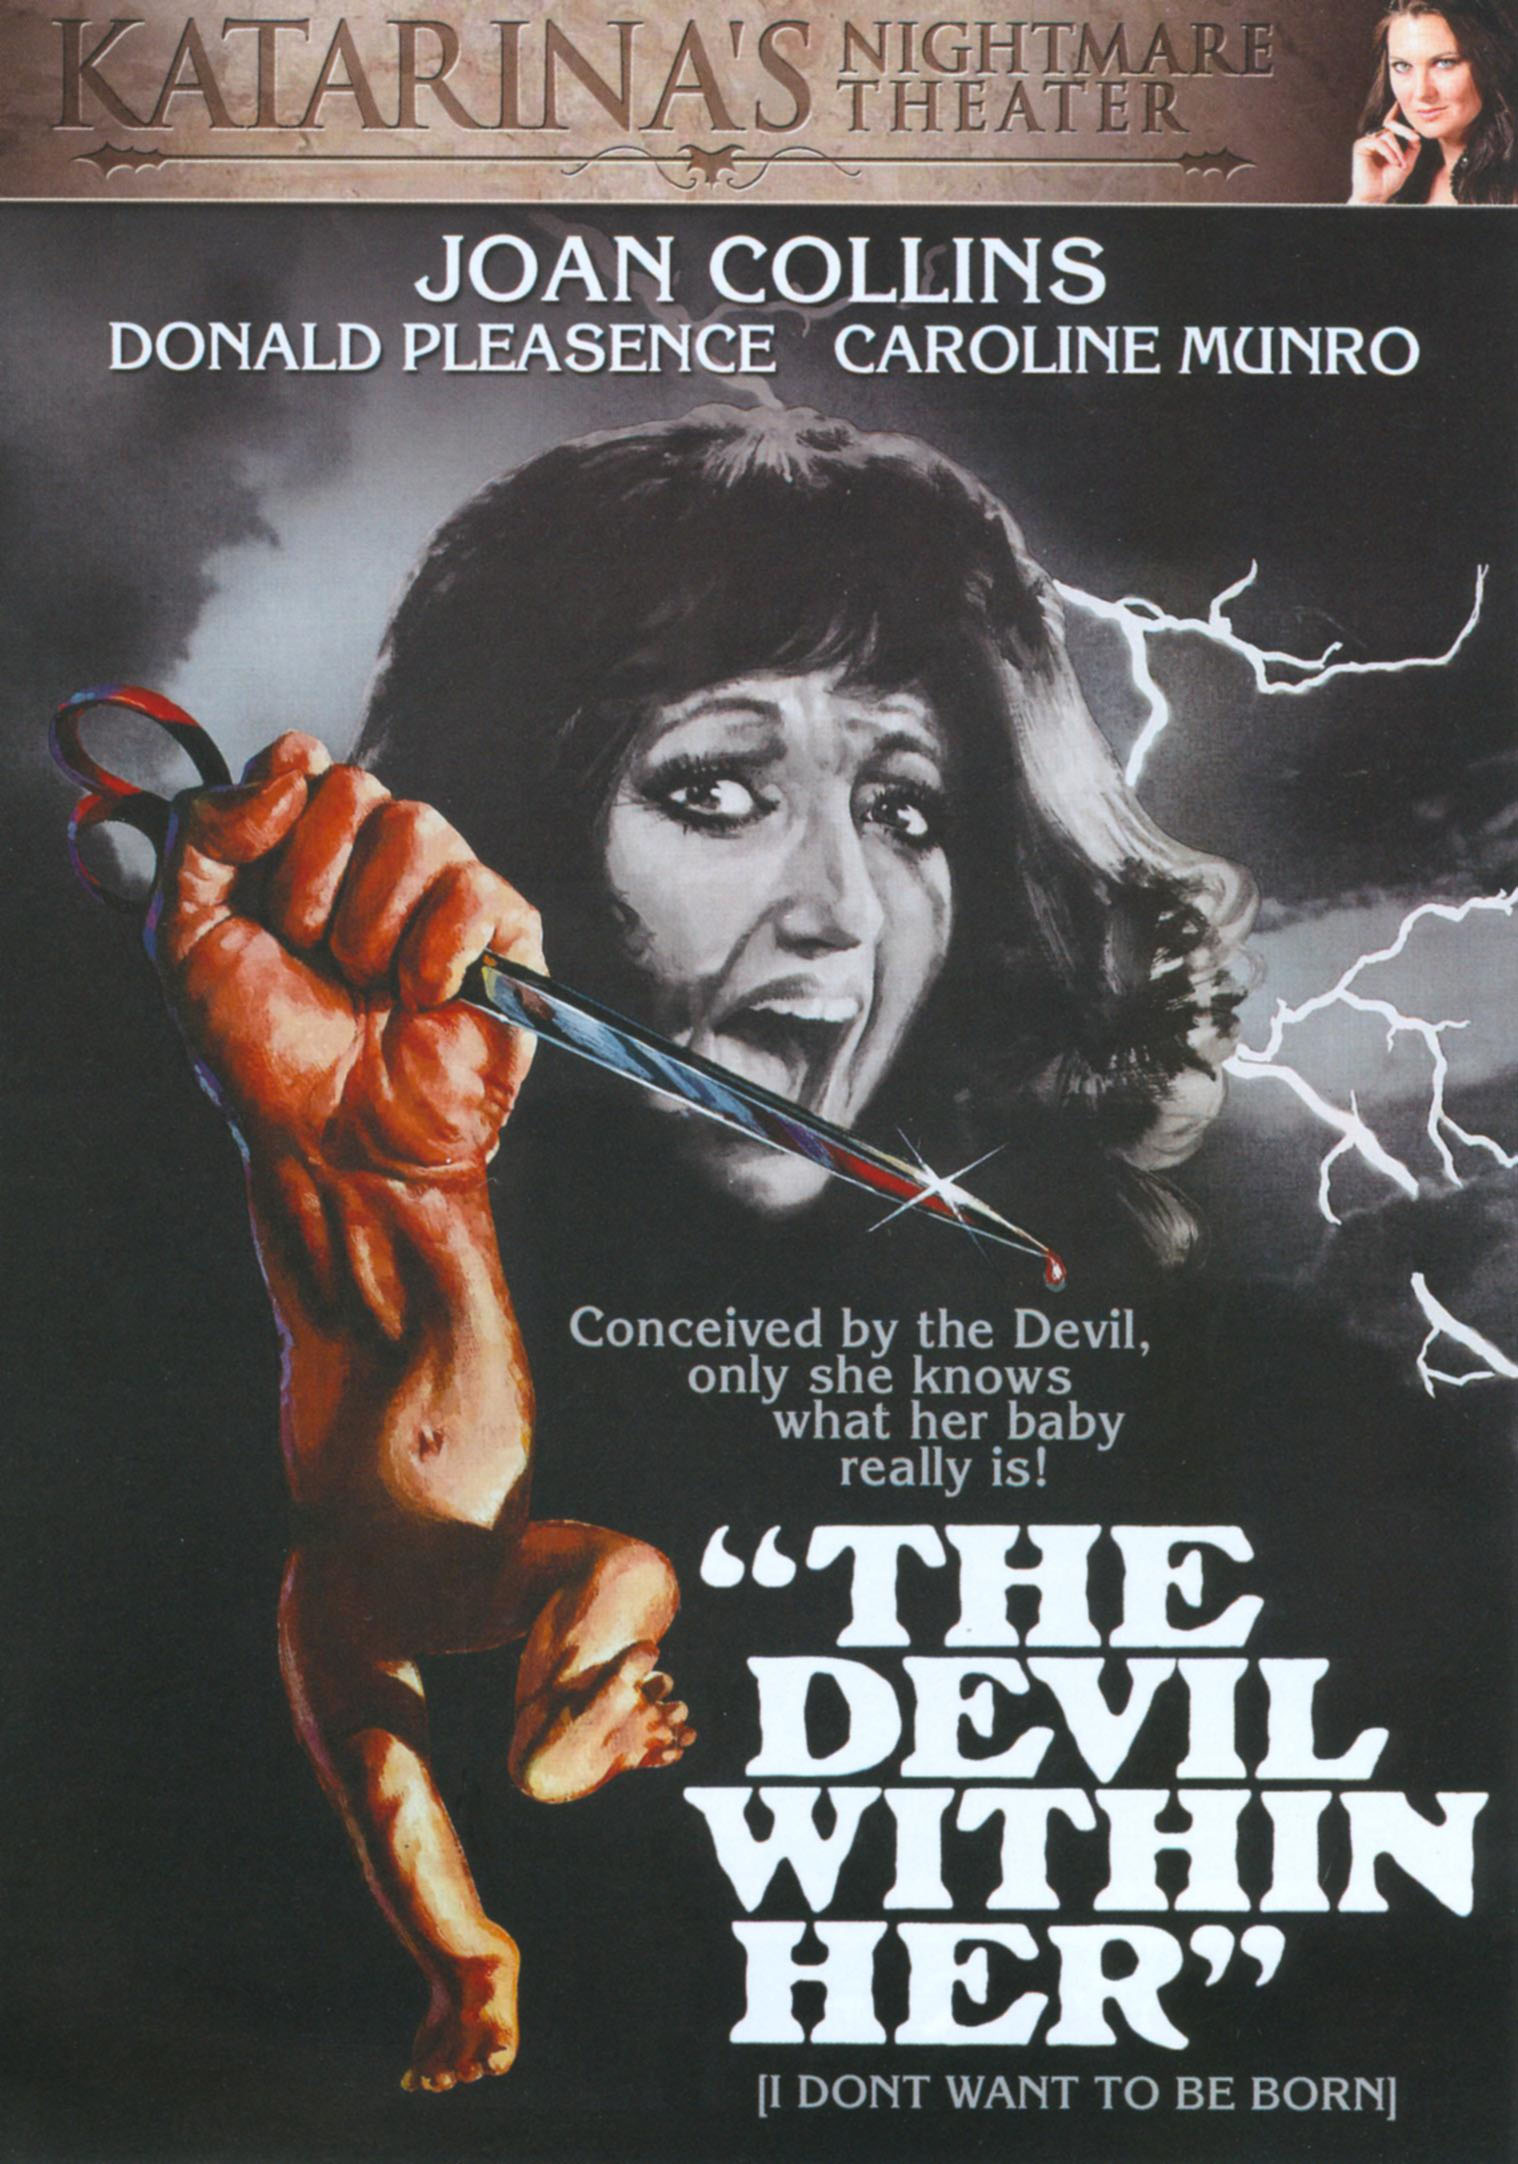 The Devil Within Her